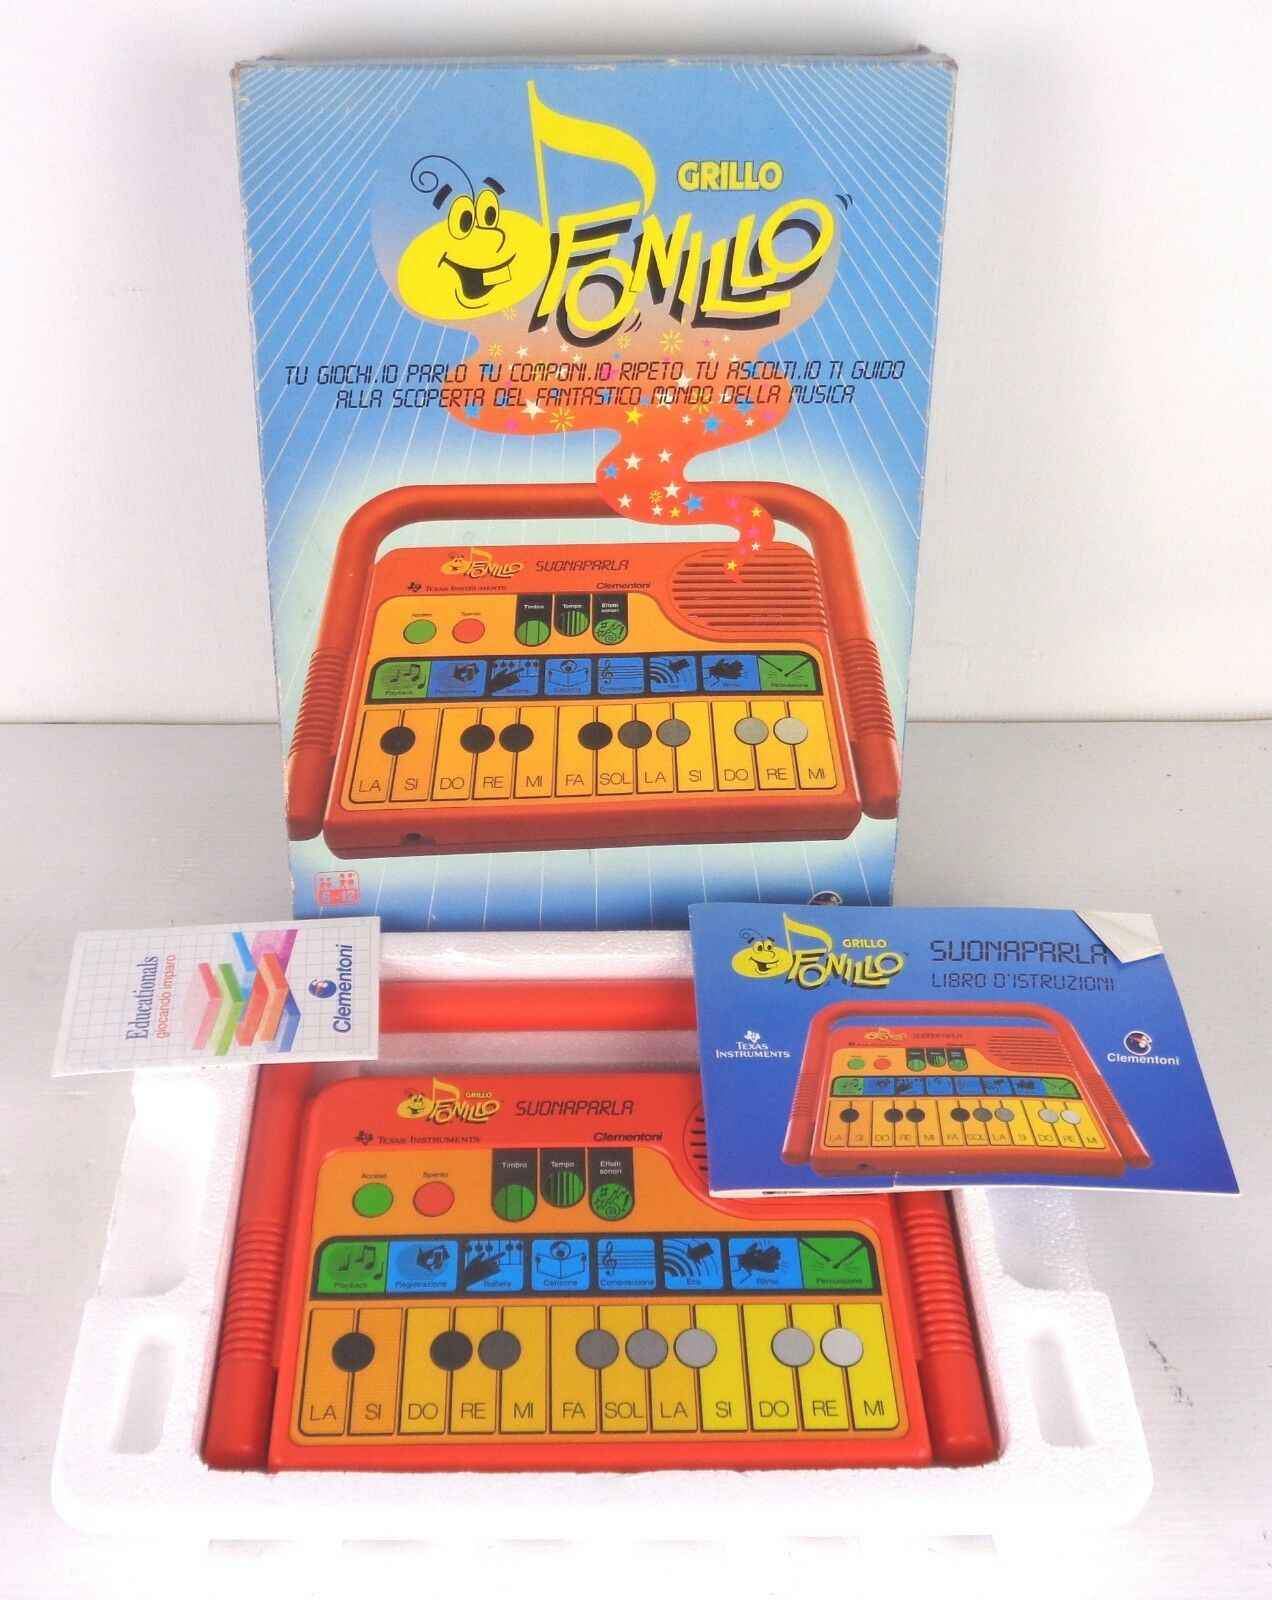 Fonillo grillo, texas instruments new with box